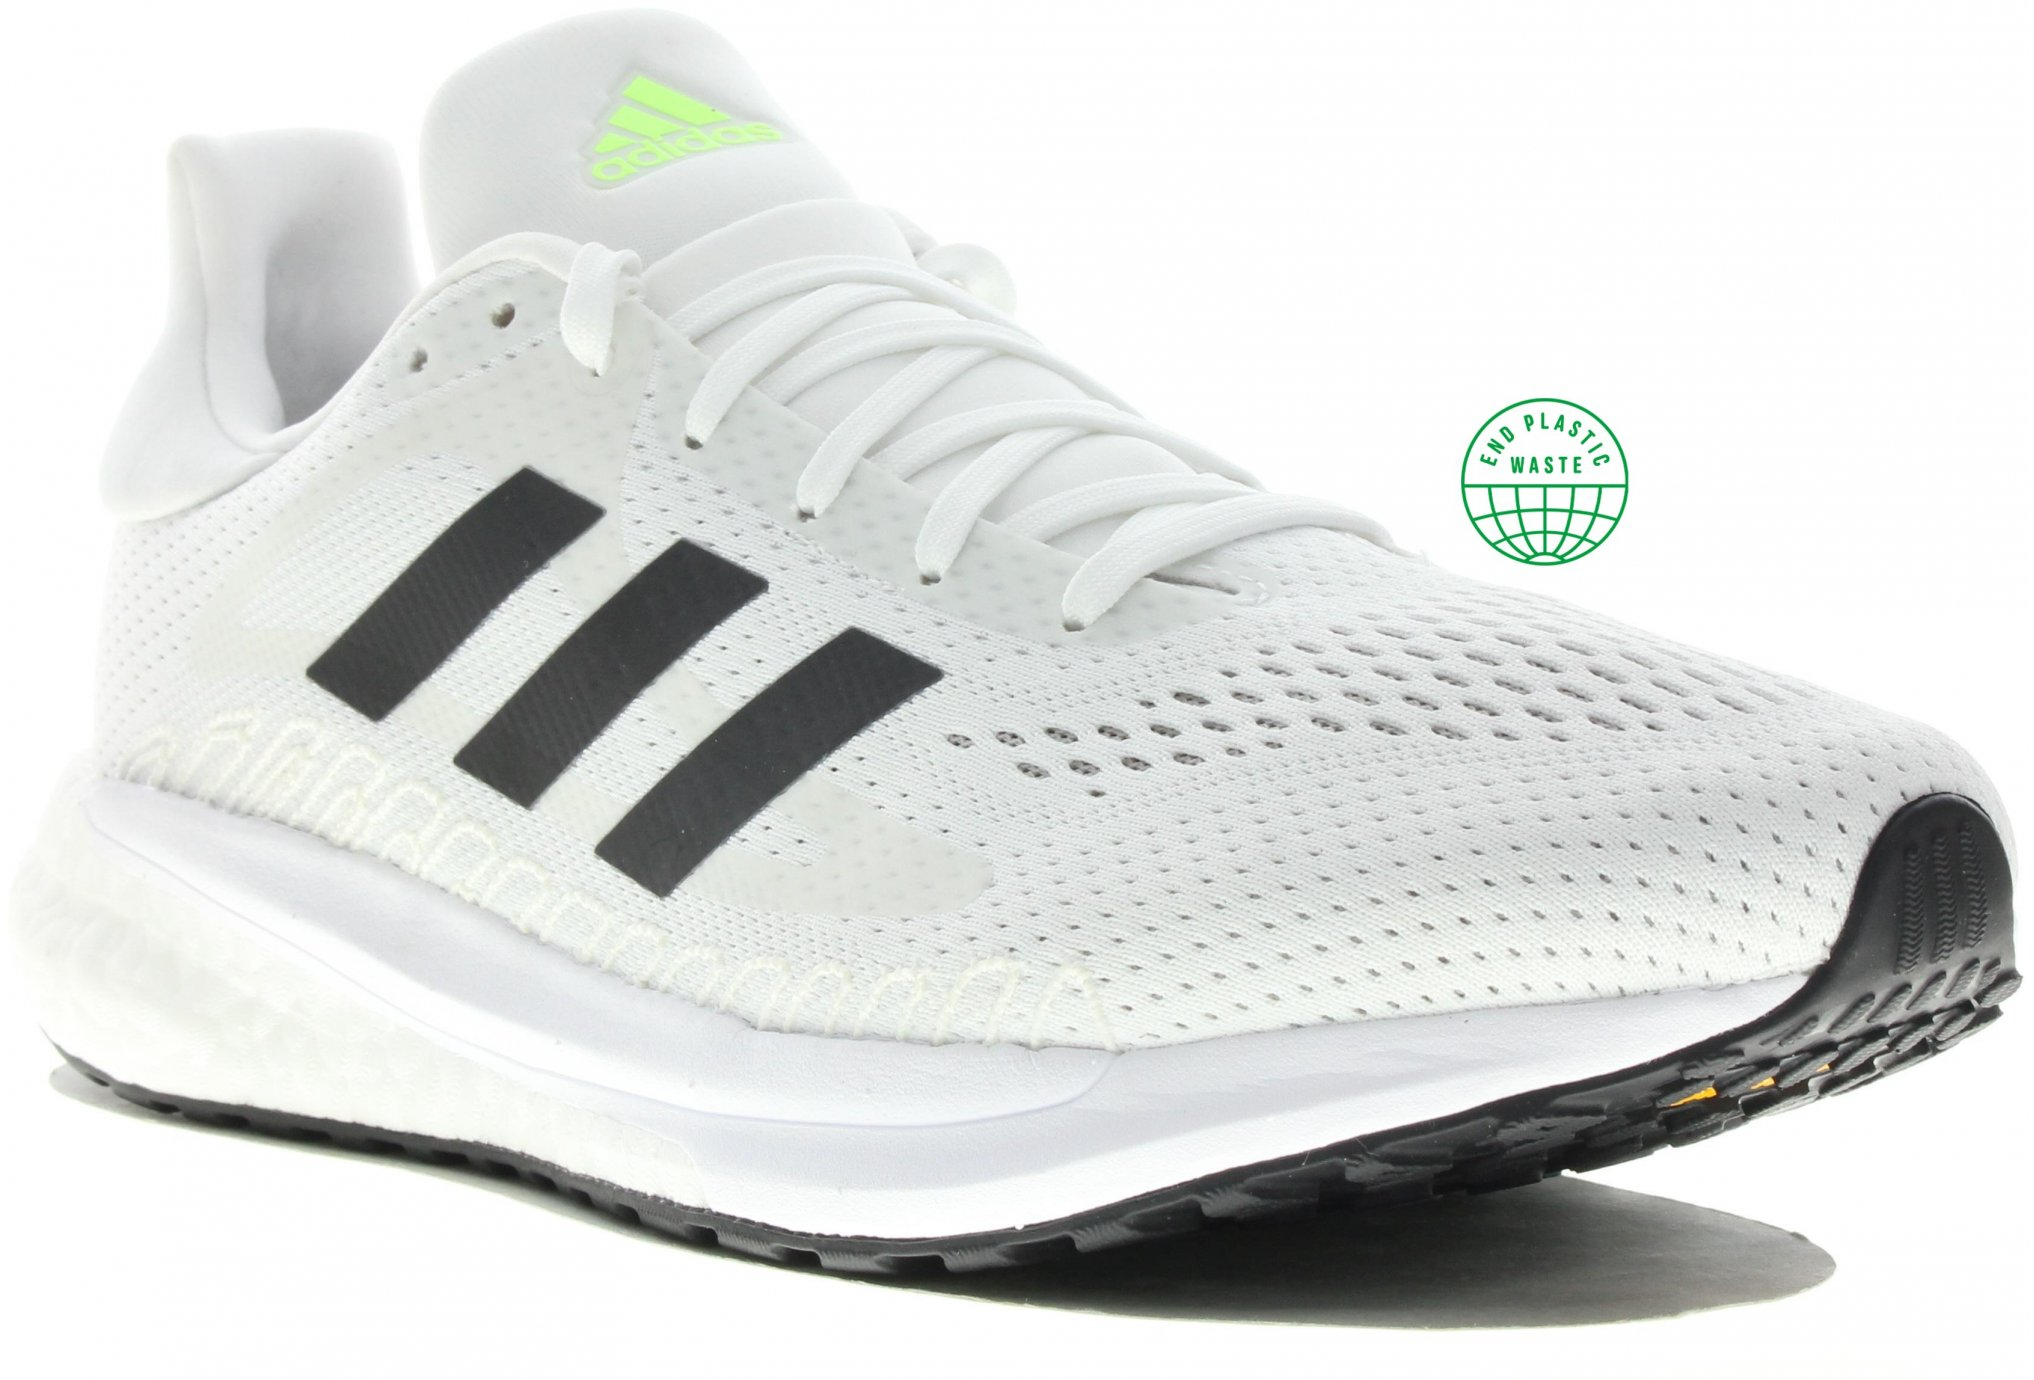 adidas Solar Glide 3 Primegreen Chaussures homme